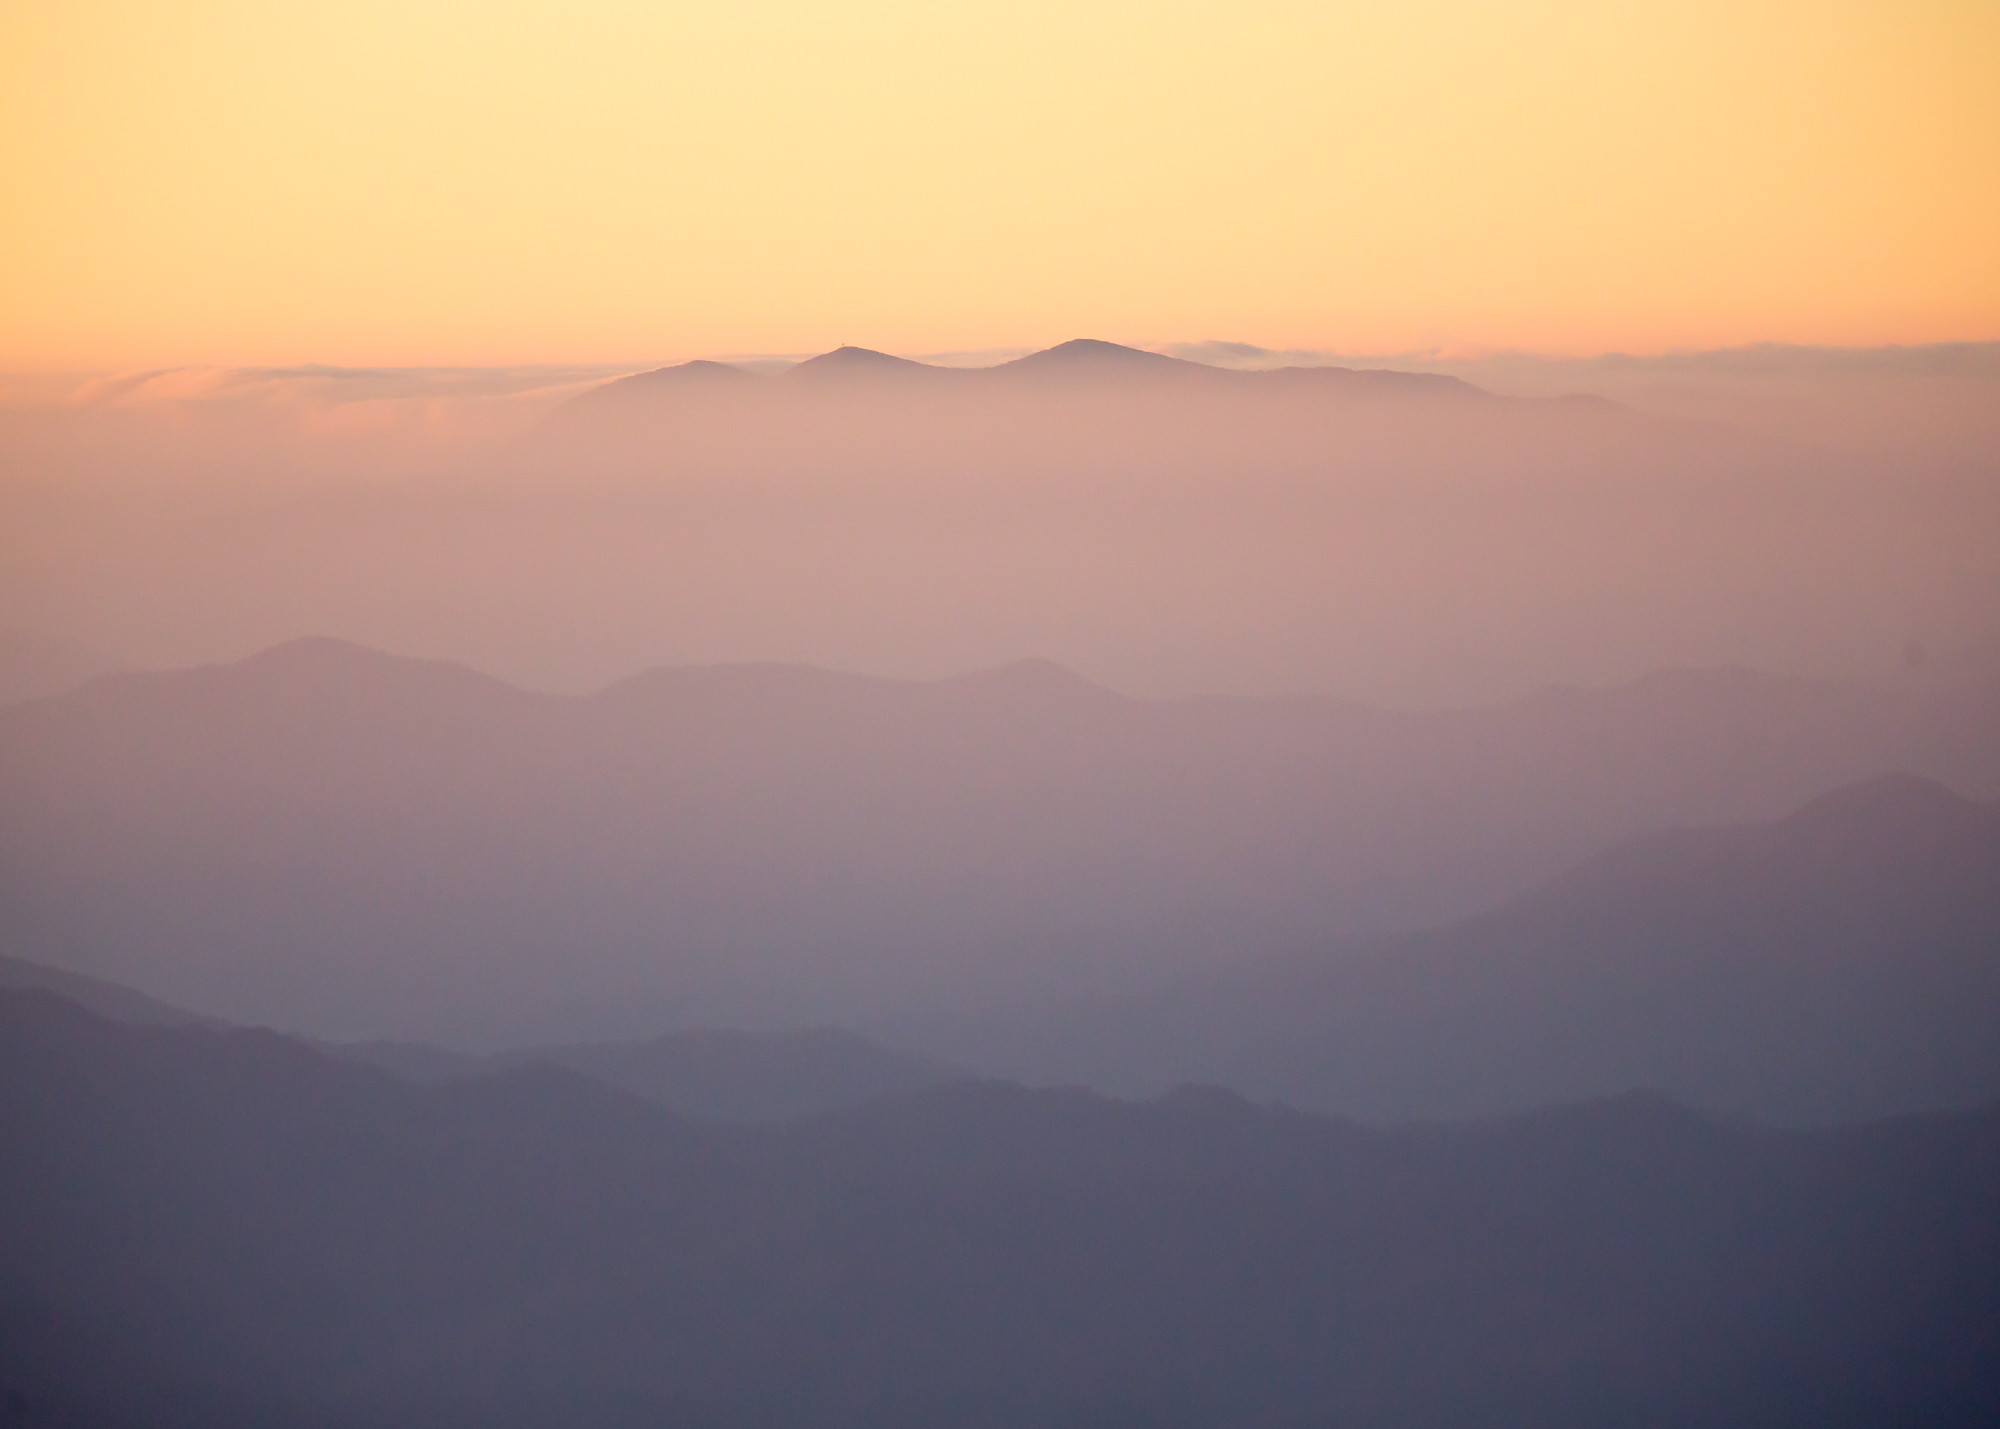 21. view from Clingmans Dome, Great Smoky Mountains National Park, Tennessee